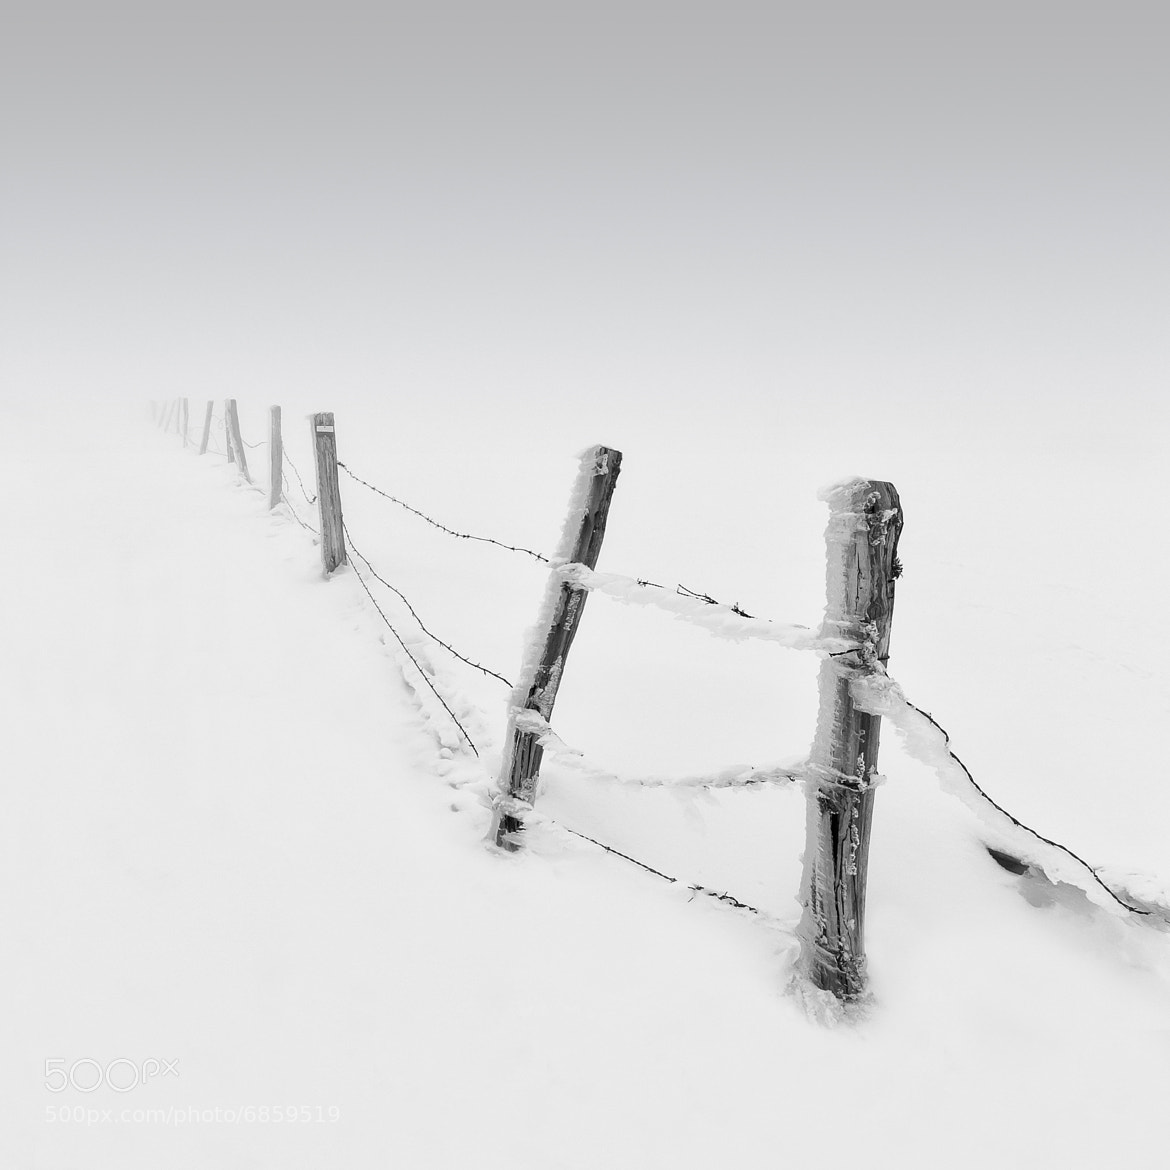 Photograph IceWire by Michael Diblicek on 500px